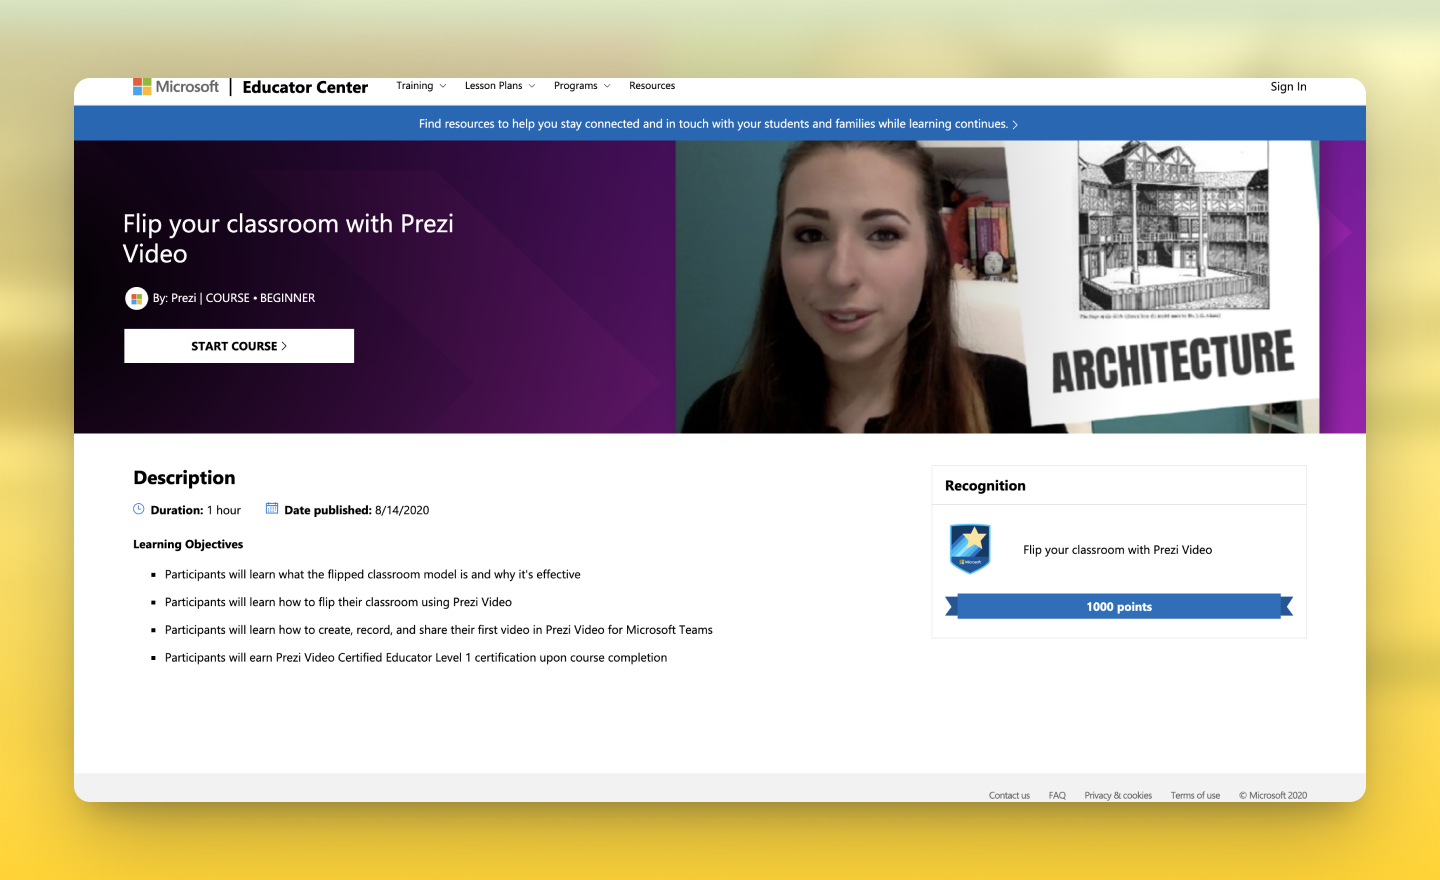 flip your classroom with Prezi Video and Microsoft